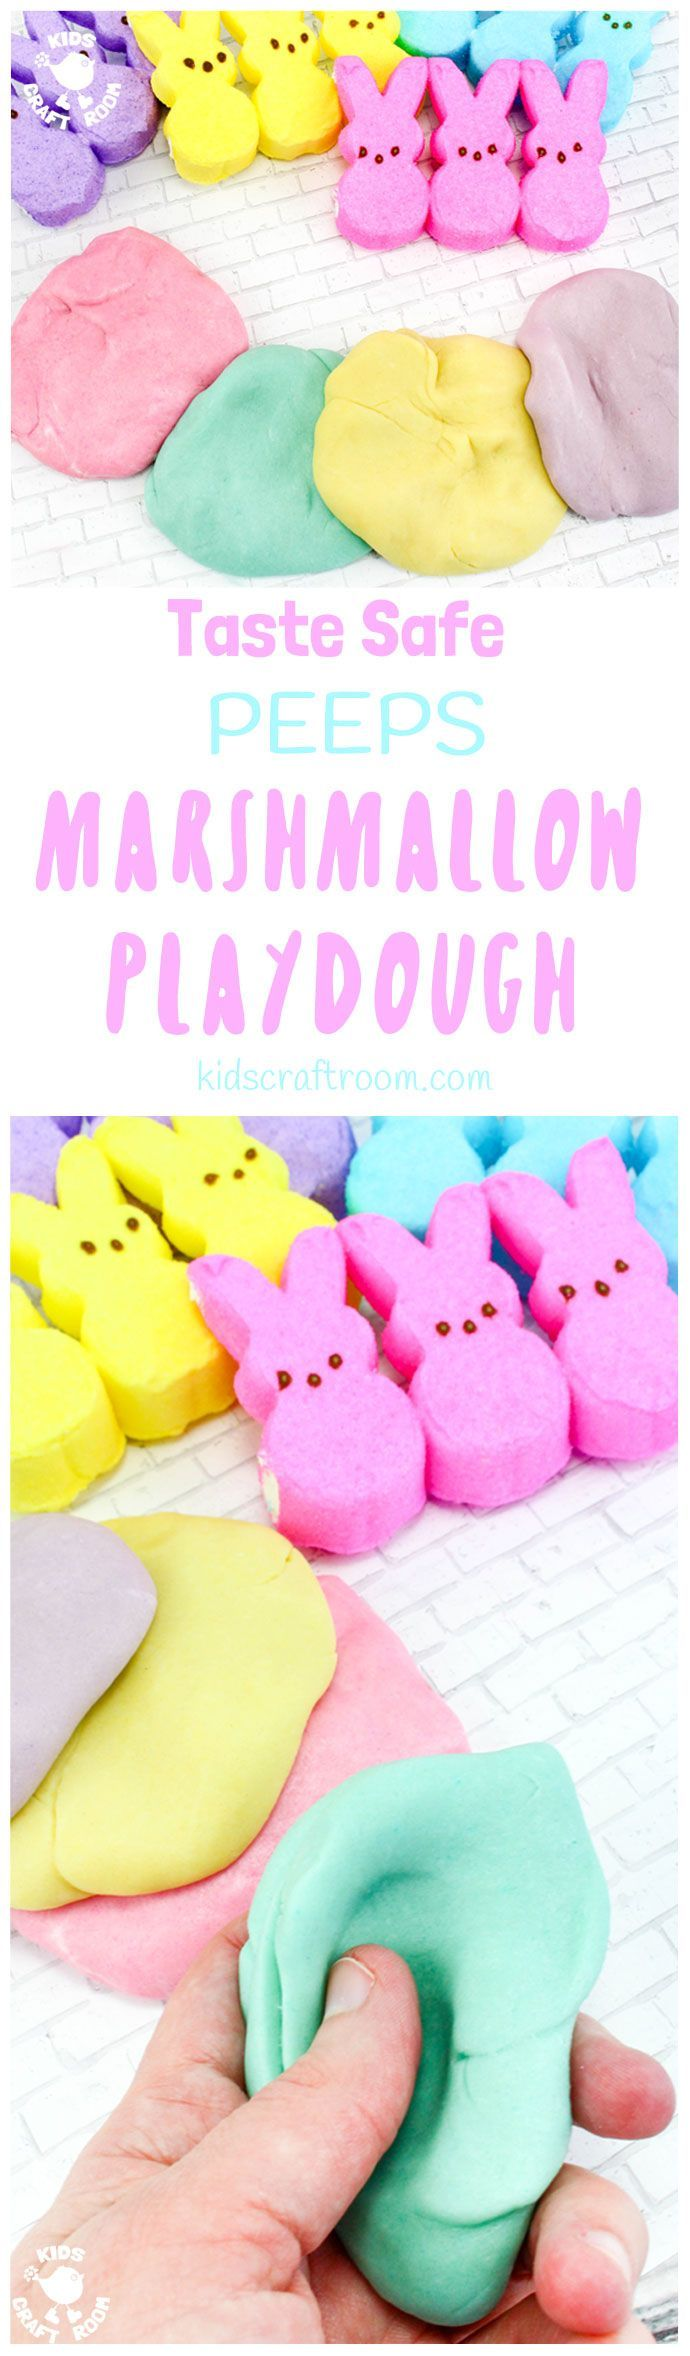 Kids will have hours of fun with this Taste Safe Peeps Marshmallow Play Dough and you don't have to worry about them sneaking a little taste as it's all edible! It's fluffy and soft, smells good and the colours are gorgeous pastels. A truly multi sensory play experience for kids of all ages. #sensoryplay #ECE #Easter #sensory #playdough #playdoughrecipe #edibleplaydough #playdoh #playdohrecipe #easteractivities #kidsactivities #peeps #kidscraftroom #sensory #preschool #earlyyears  #playideas